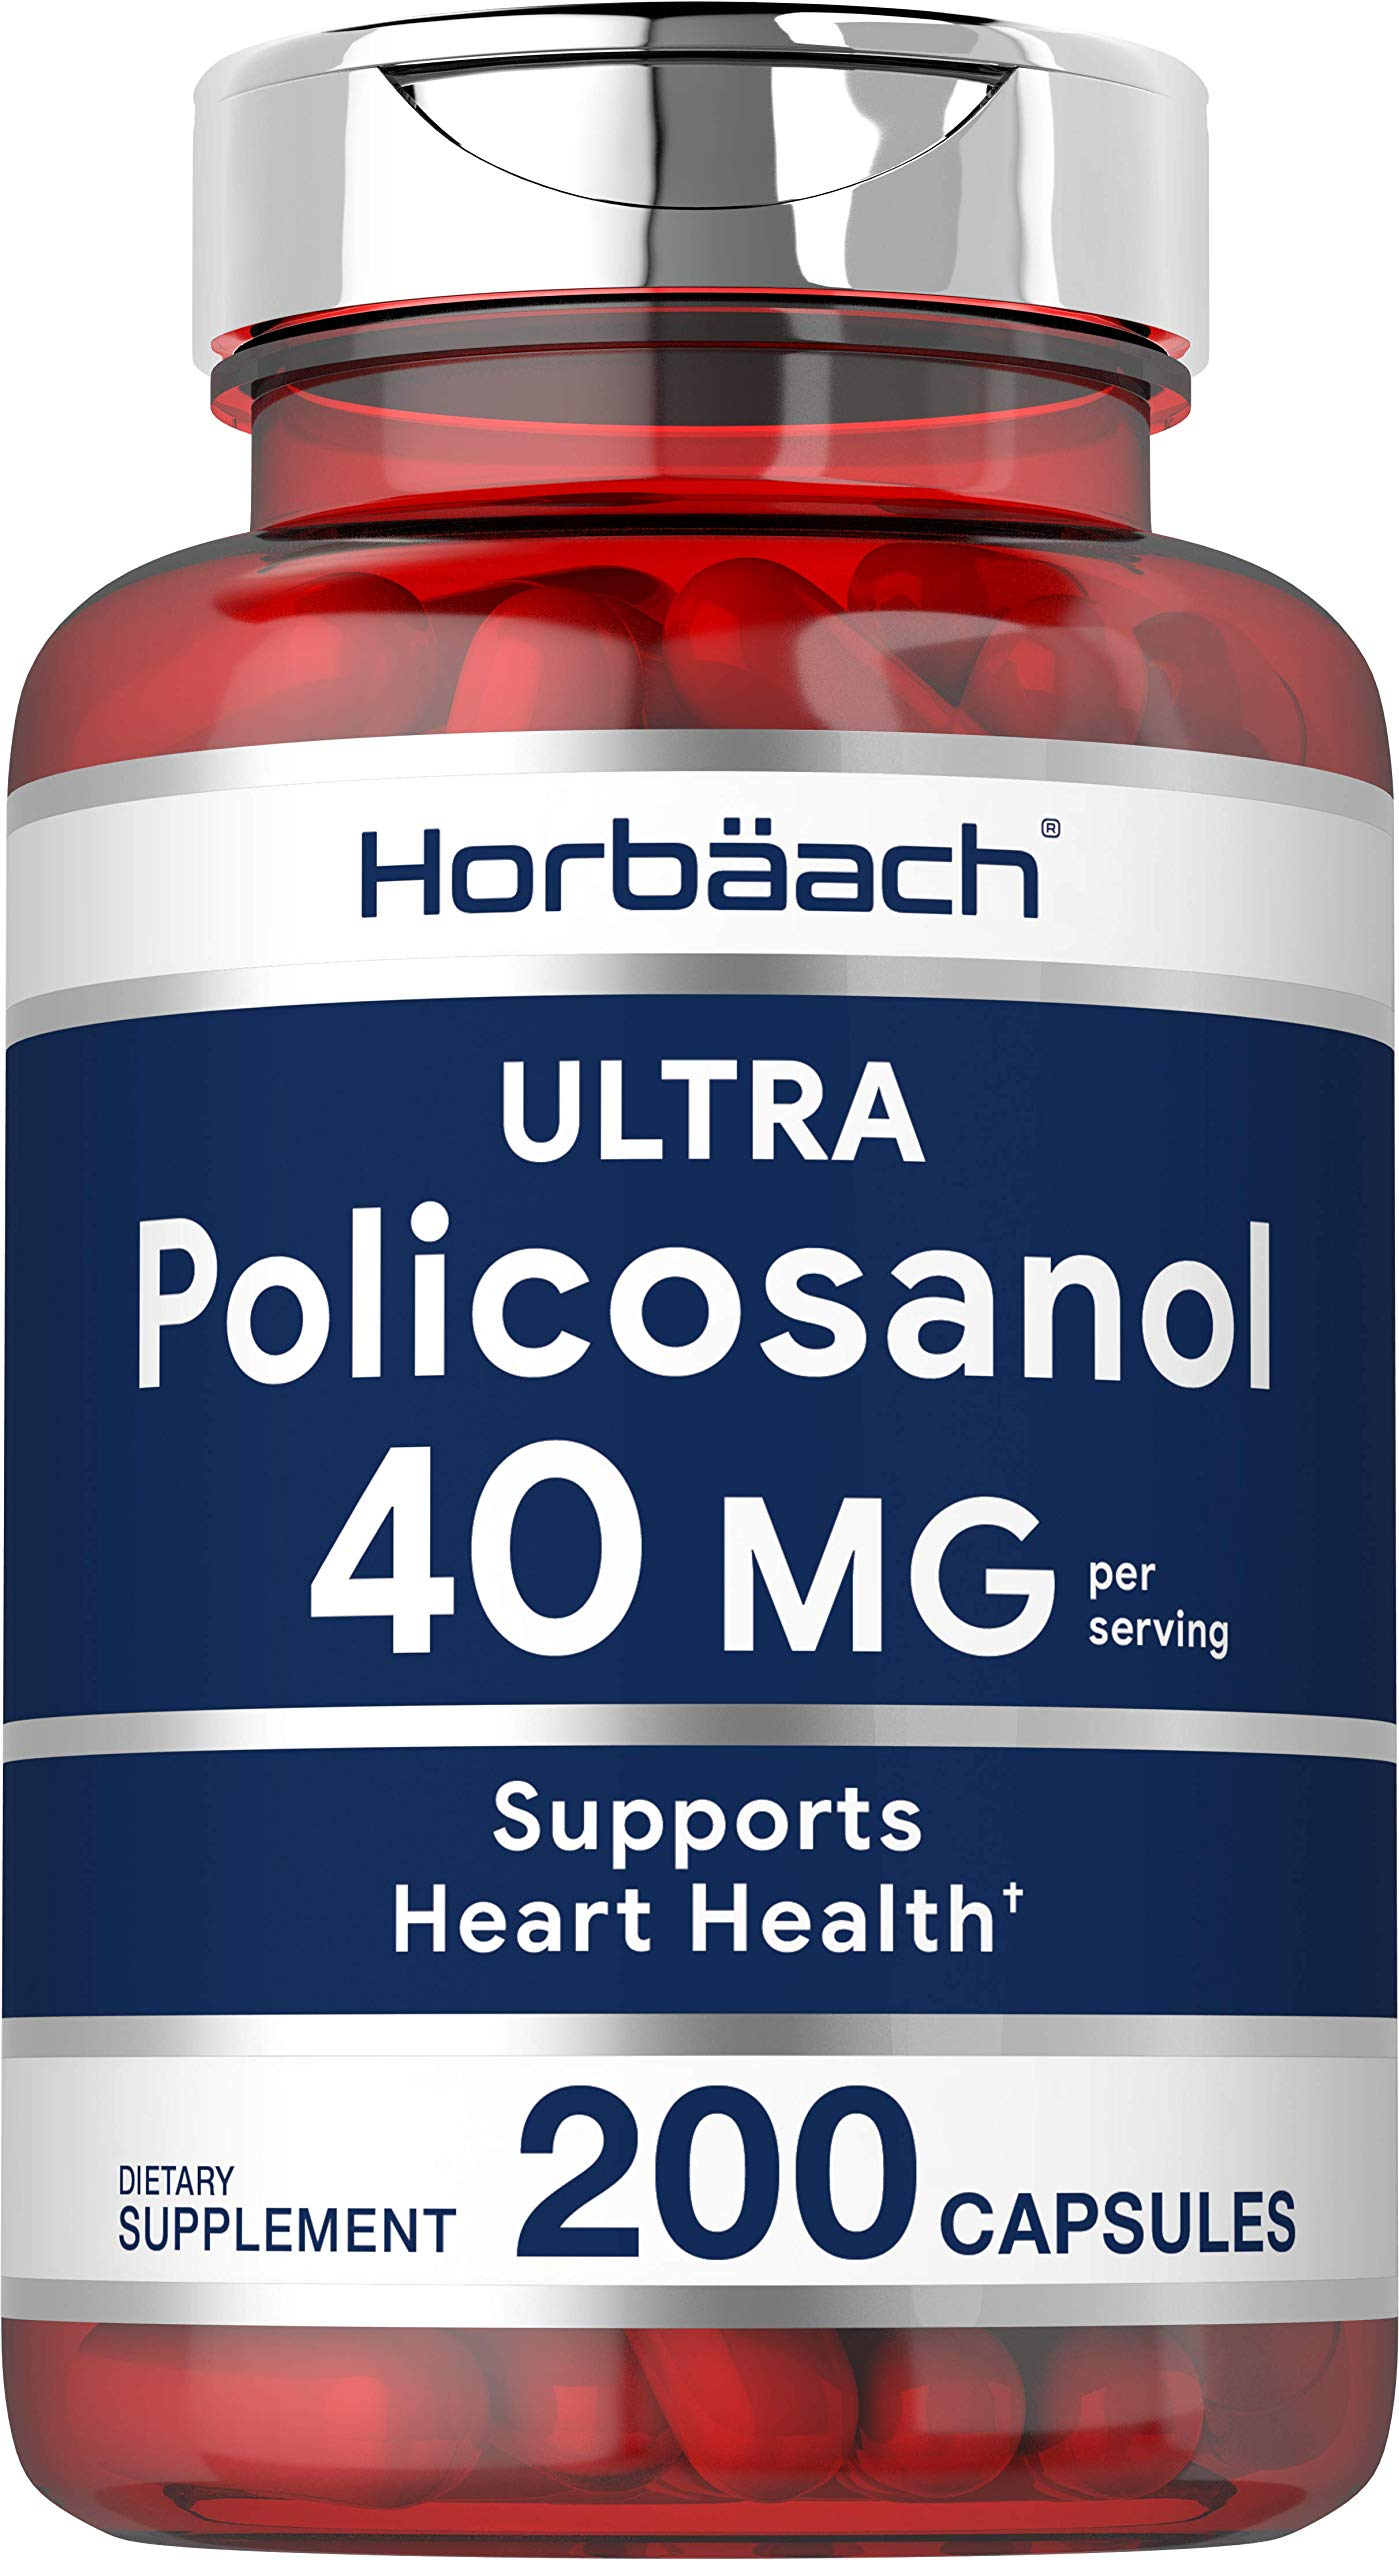 Policosanol 40mg | 200 Capsules | Supports Cholesterol and Heart Health | Non-GMO and Gluten Free | by Horbaach